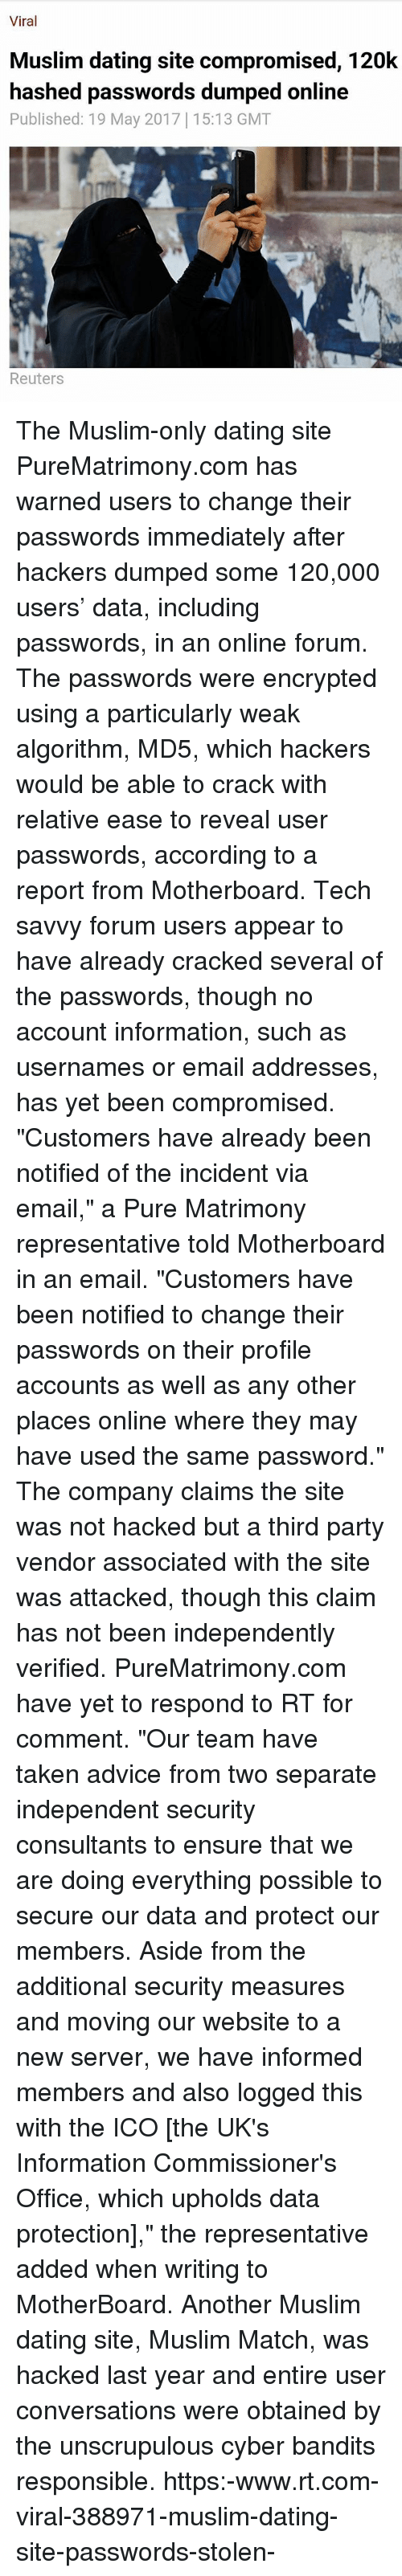 dating site compromised